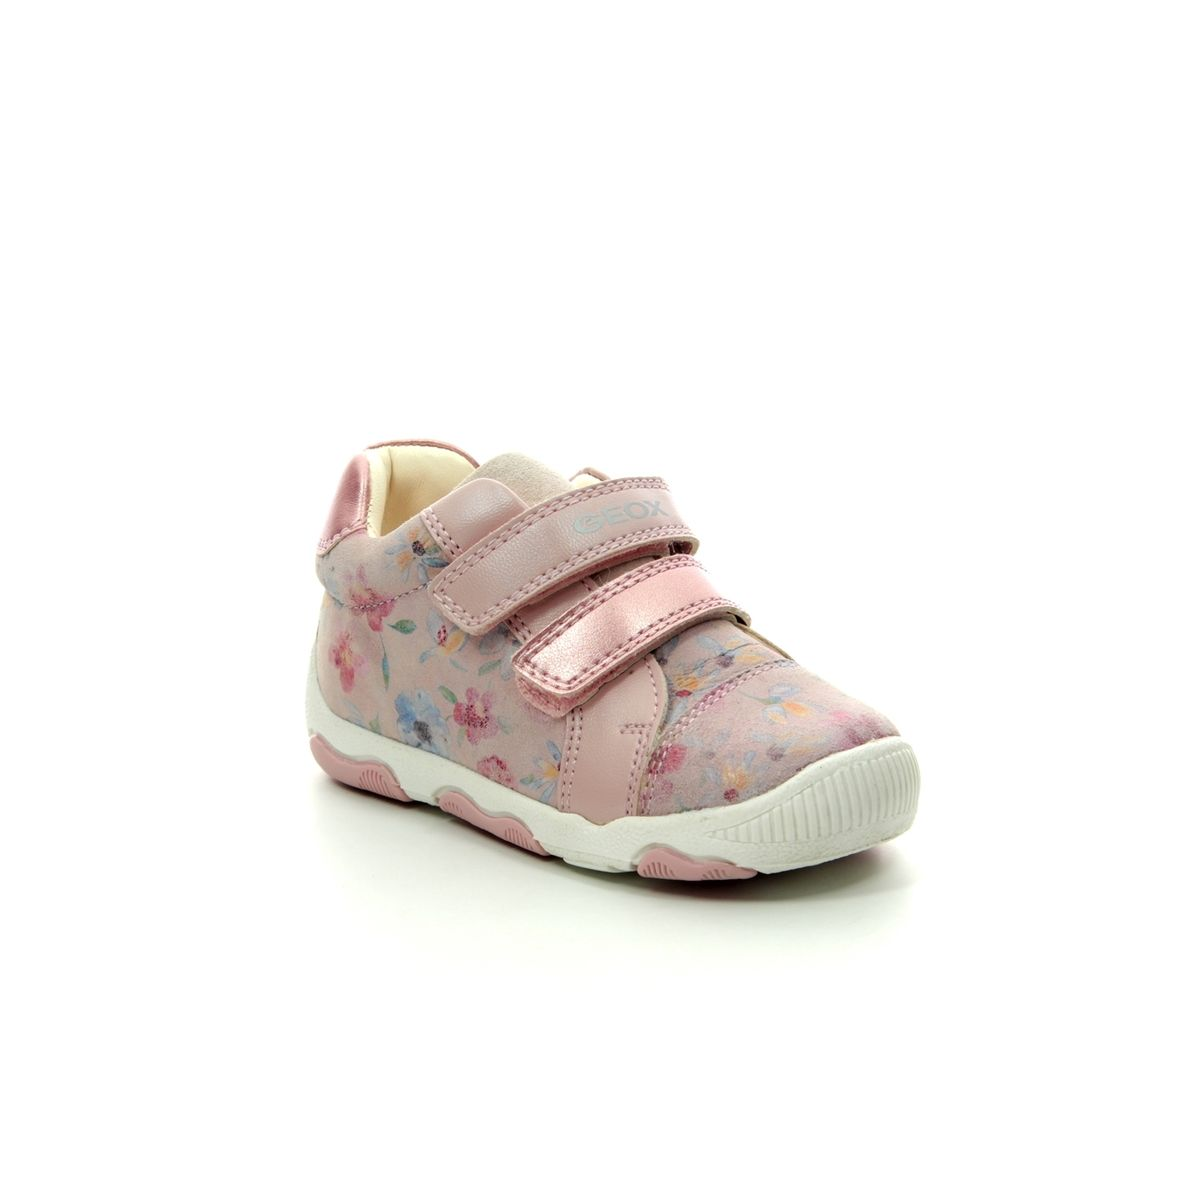 Frotar Bolos Erudito  Geox Baby Balu Girl B920QA-C8172 Pink first shoes